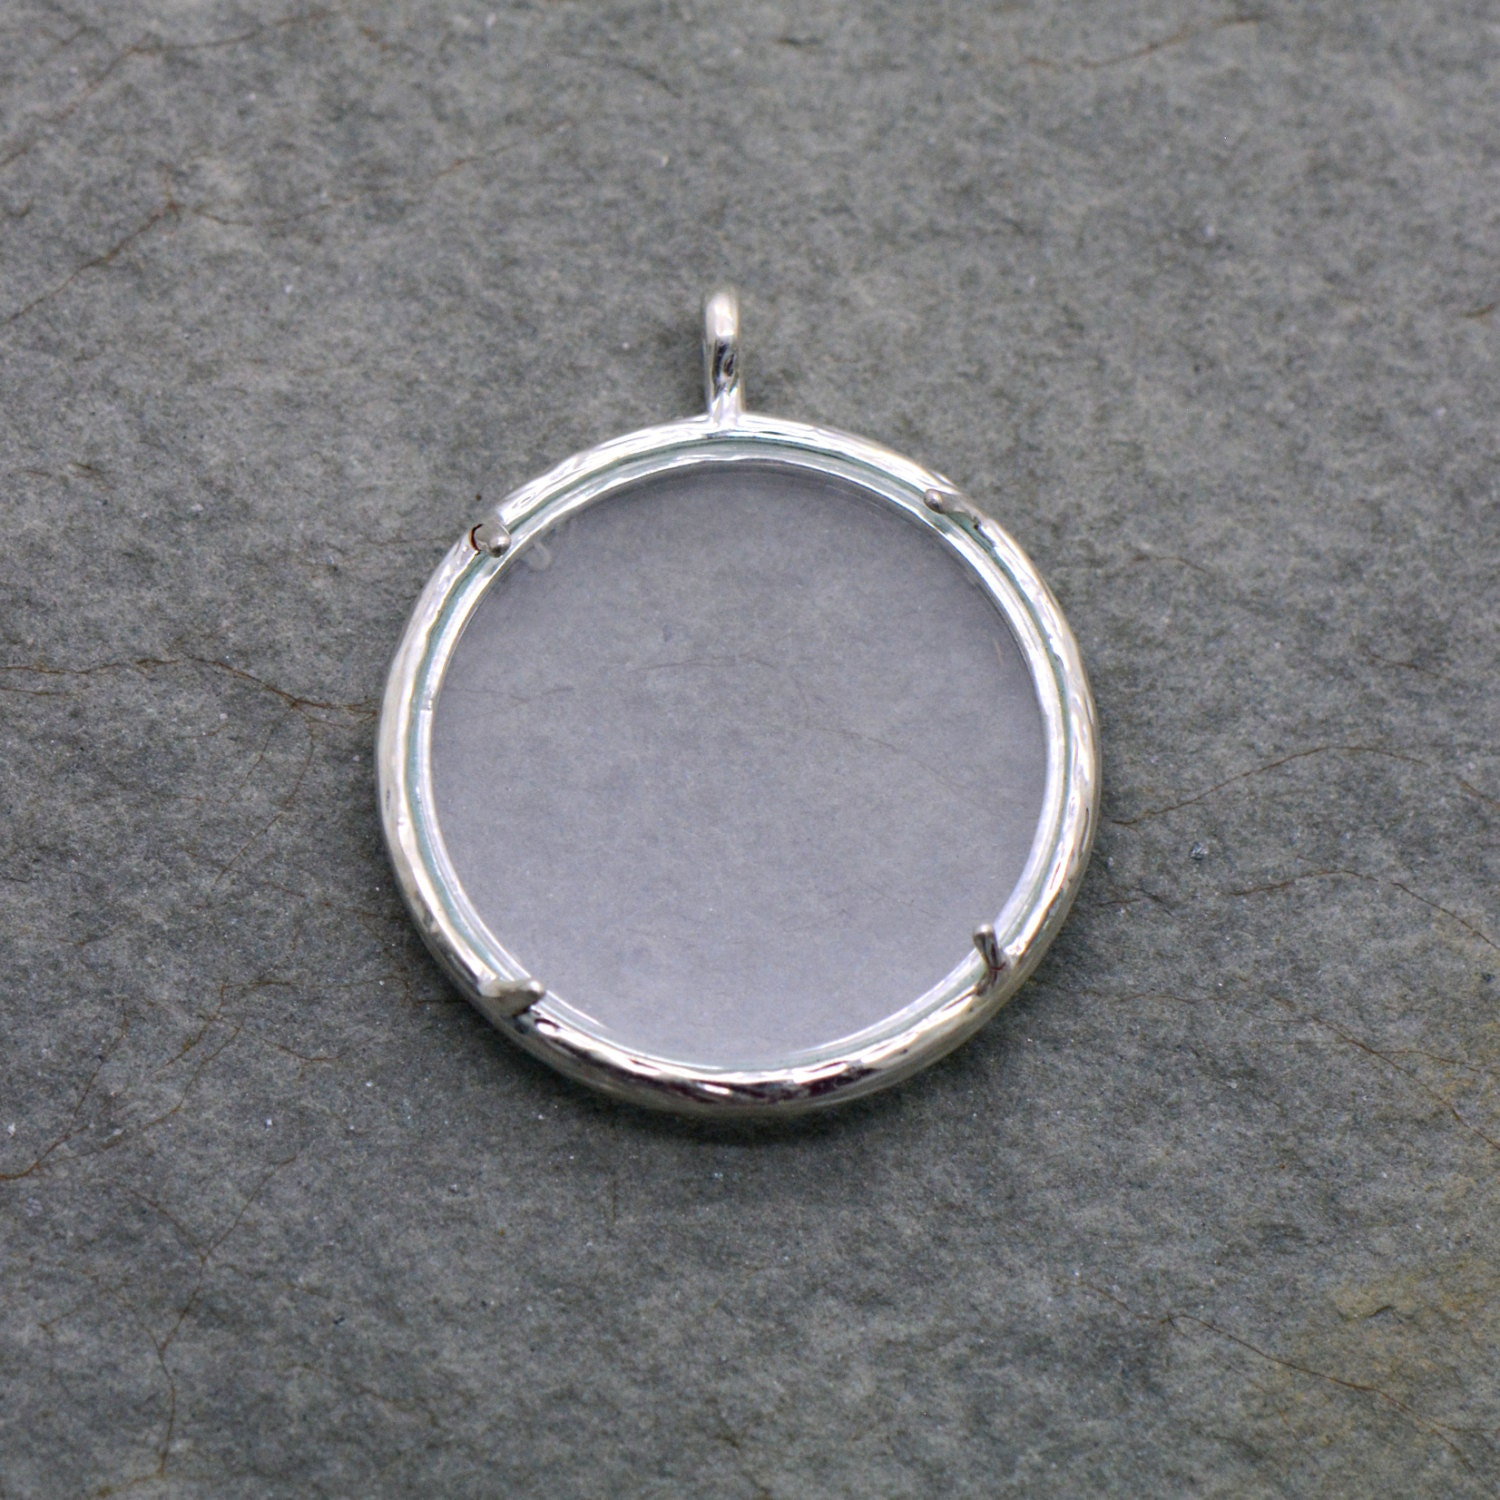 Wholesale lot diy glass locket pendant sterling silver plated brass 2396 aloadofball Choice Image